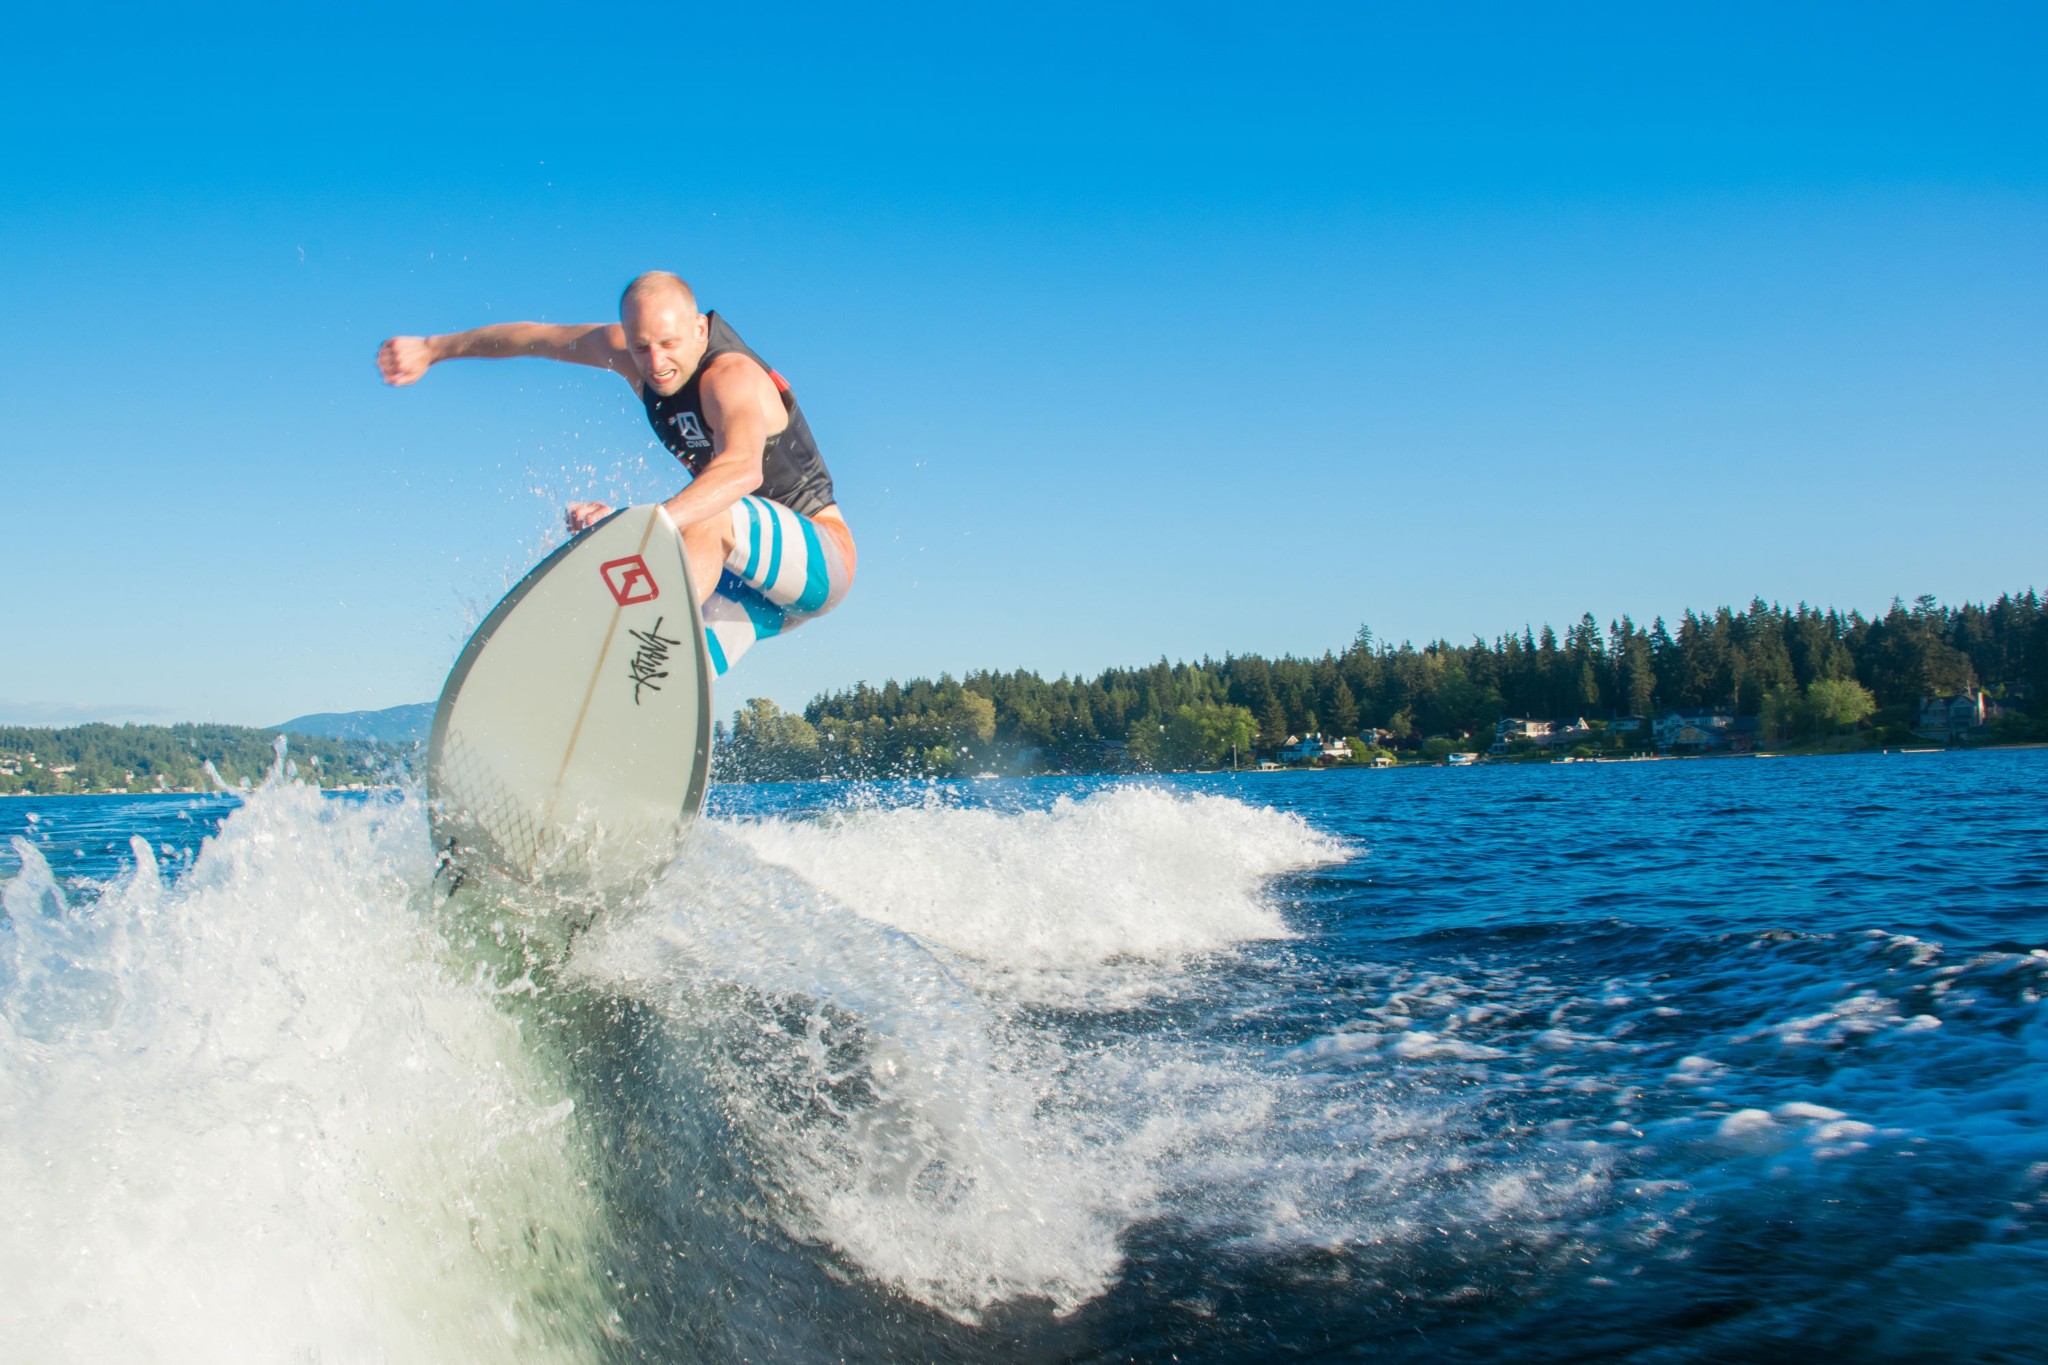 shred-for-brad-lake-sammamish-1